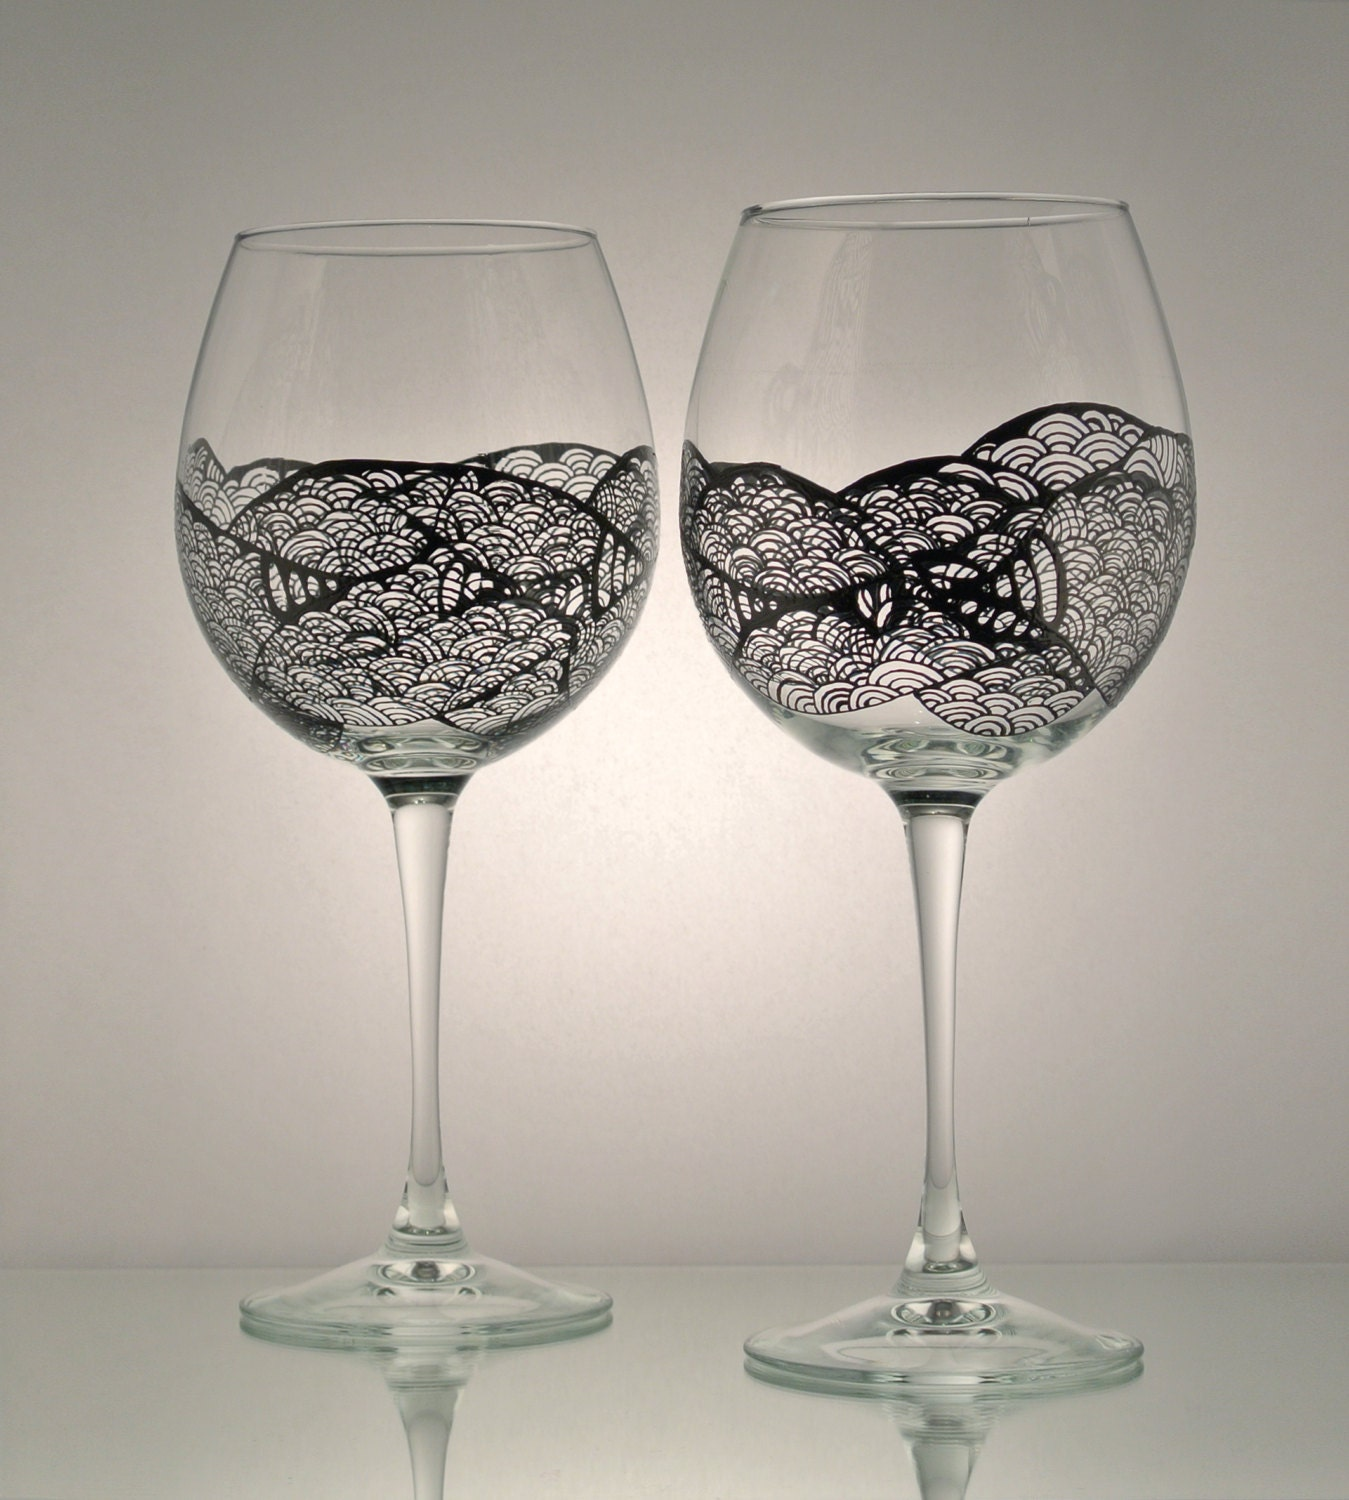 Set of 2 individually hand painted wine glasses licorice Images of painted wine glasses